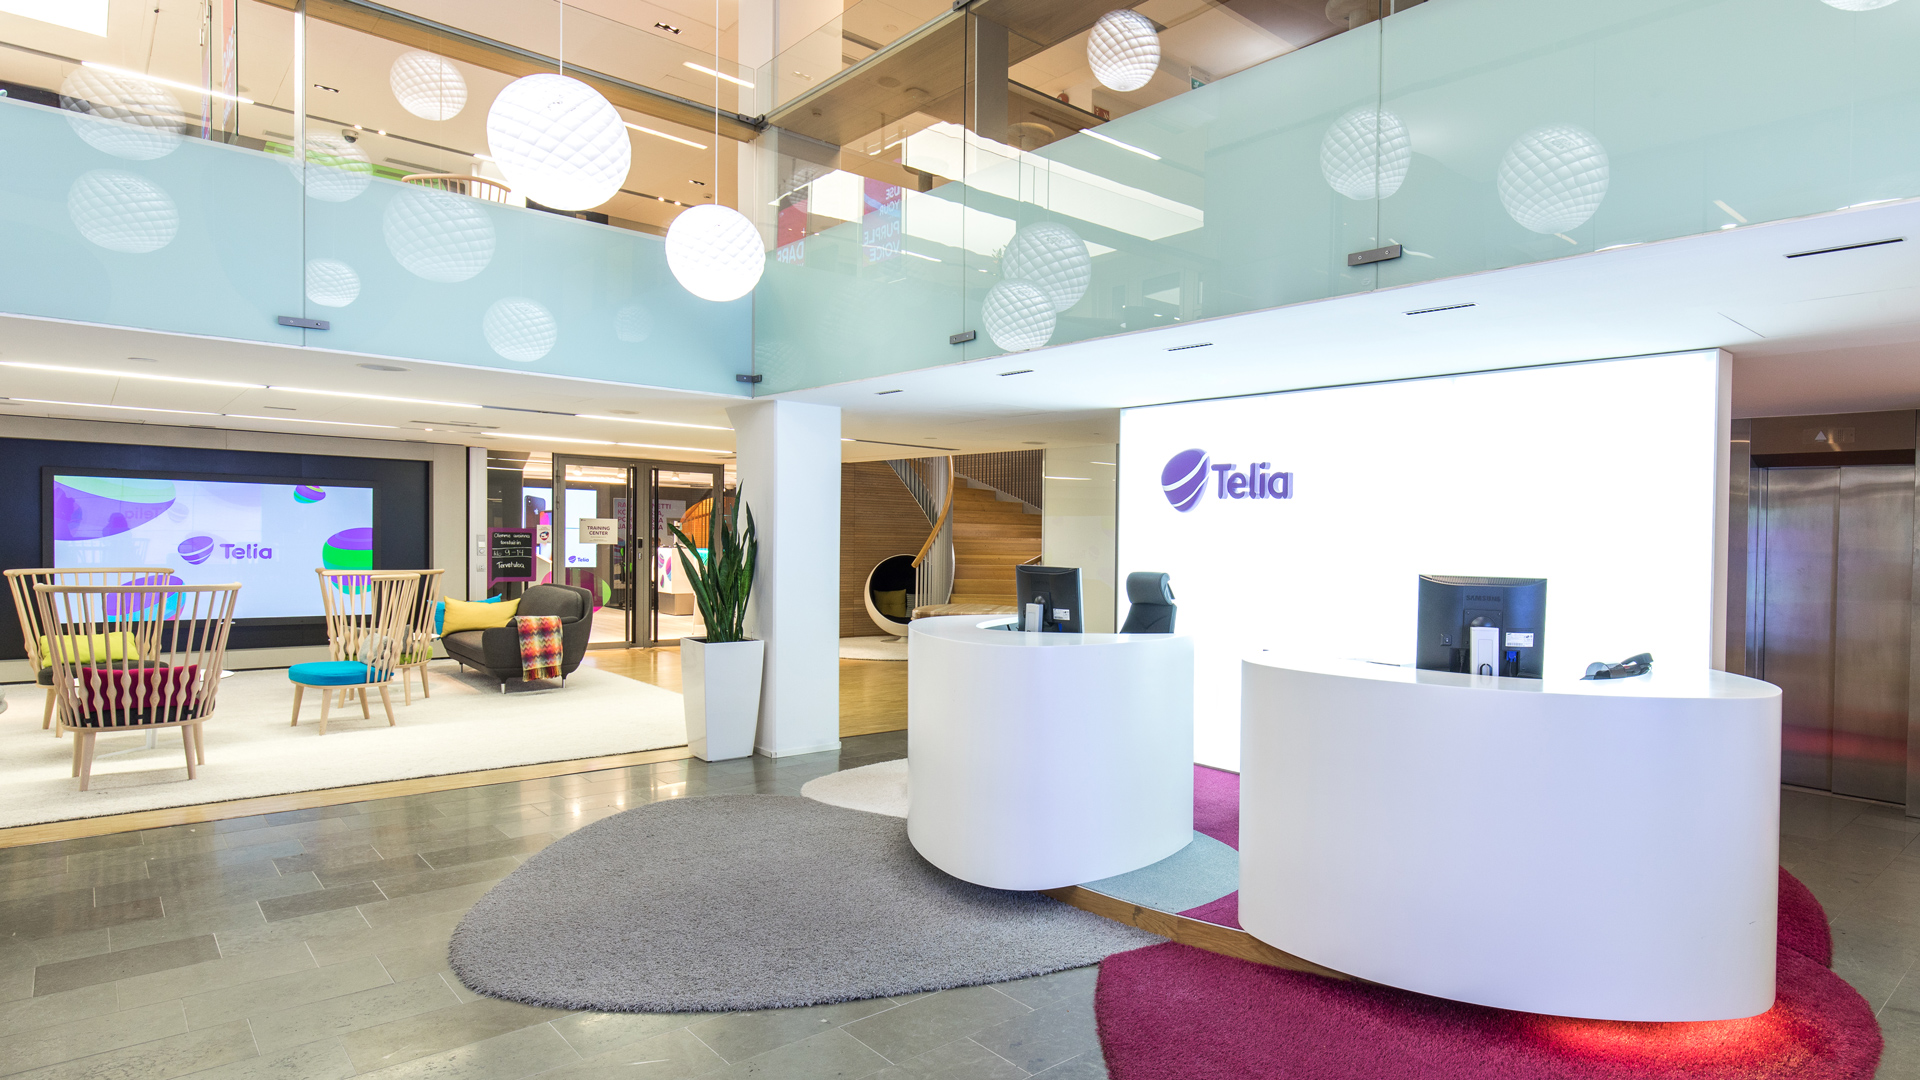 Telia-Finland-Headquarters-Teollisuuskatu-GI-Project-1